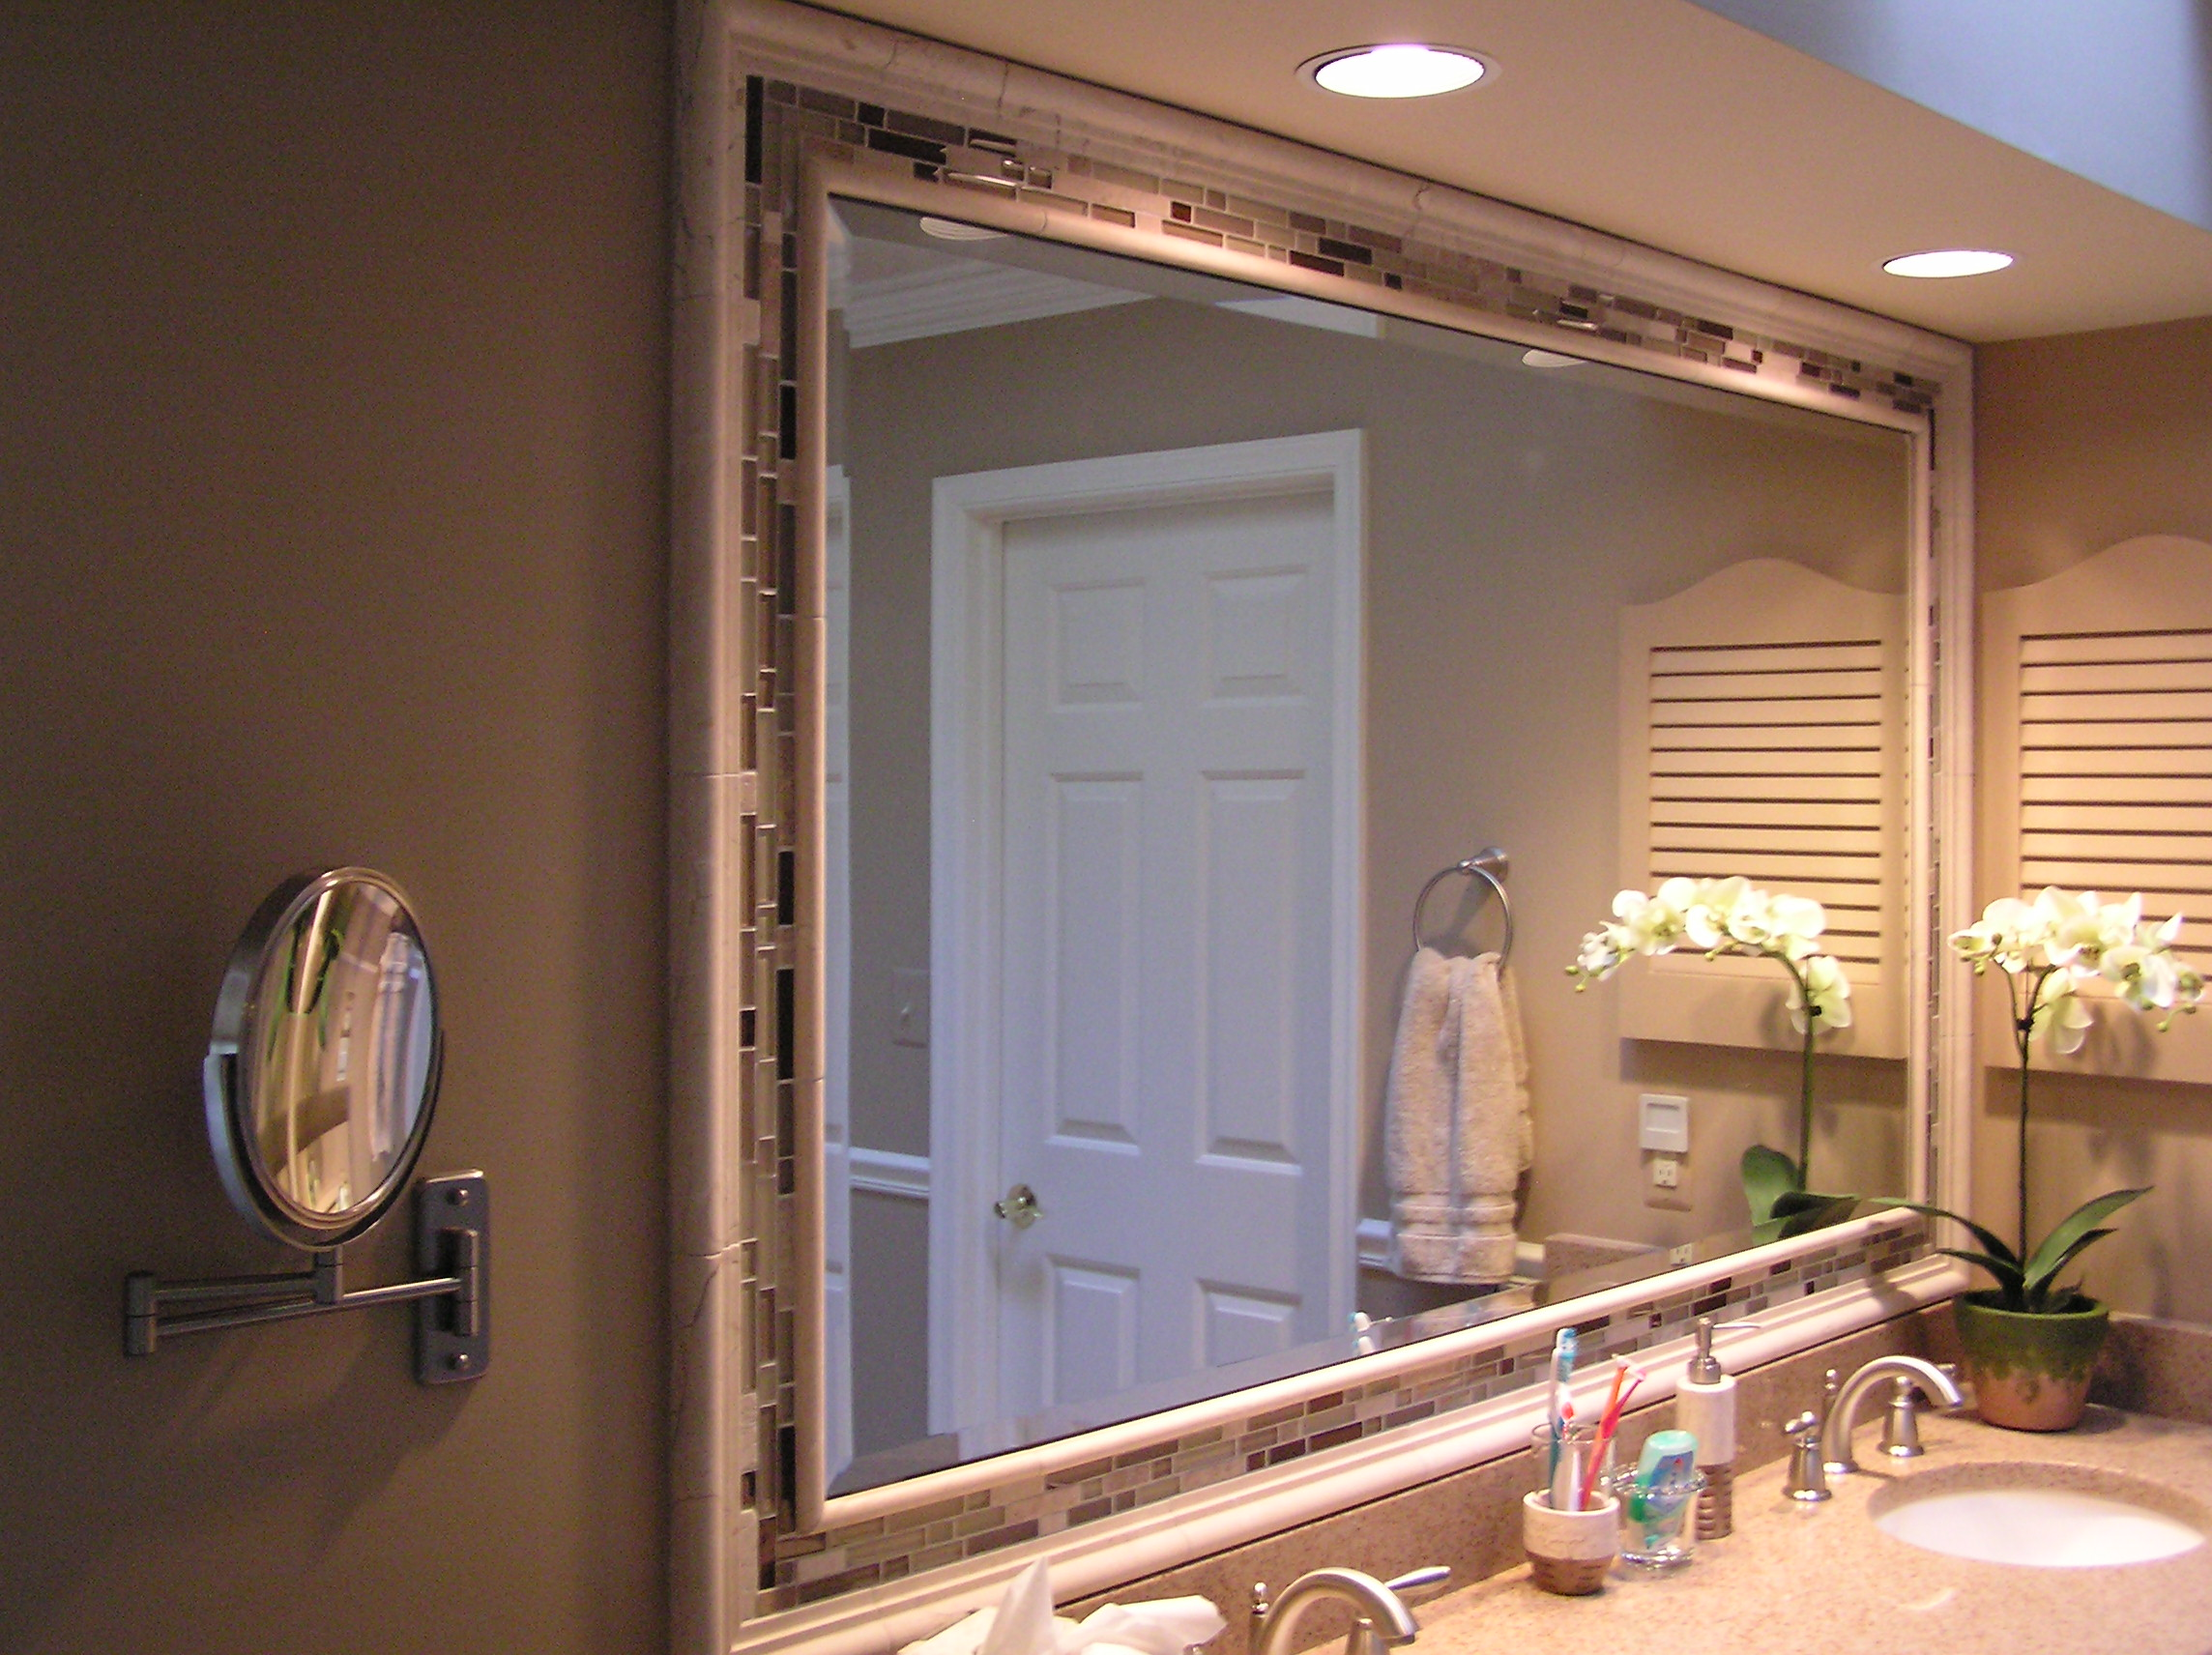 Bathroom vanity mirror ideas - large and beautiful photos. Photo to on restroom design, foyer design, staircase design, bathtub design, washroom design, bedroom design, door design, exterior design, room design, nursery design, pantry design, small bath design, interior design, kitchen design, shower design, basement design, garage design, closet design, tile design, toilet design,